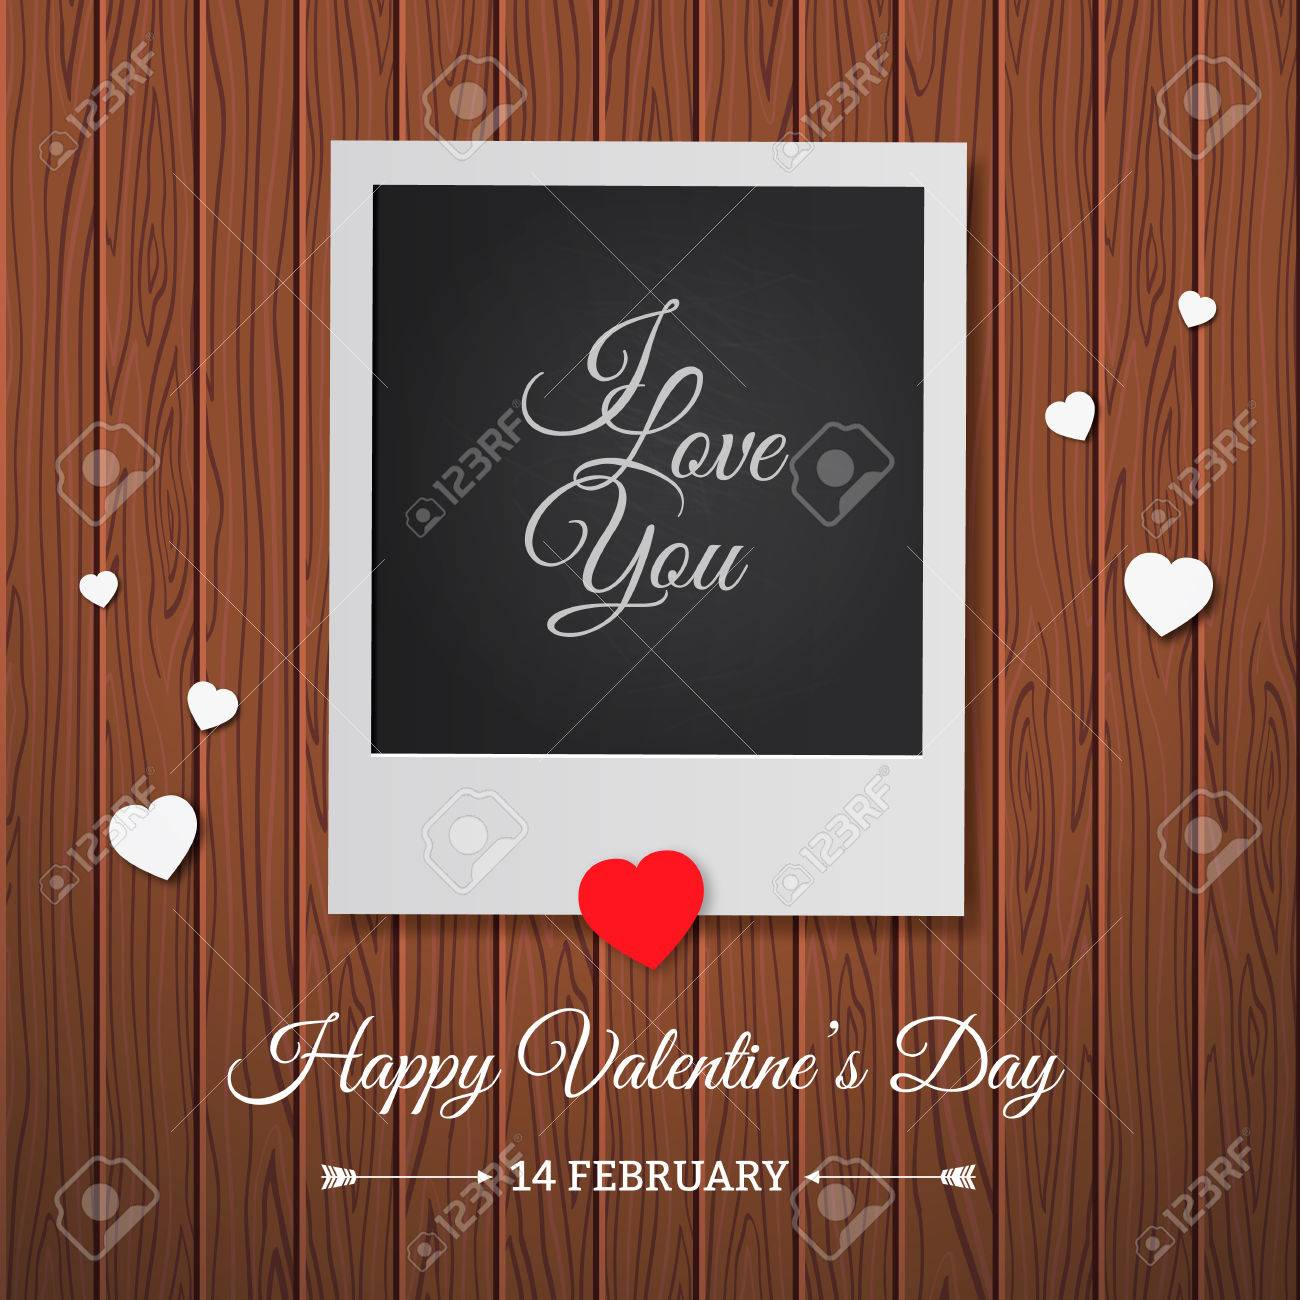 Postcard Happy Valentine\'s Day With A Blank Template For Photo ...